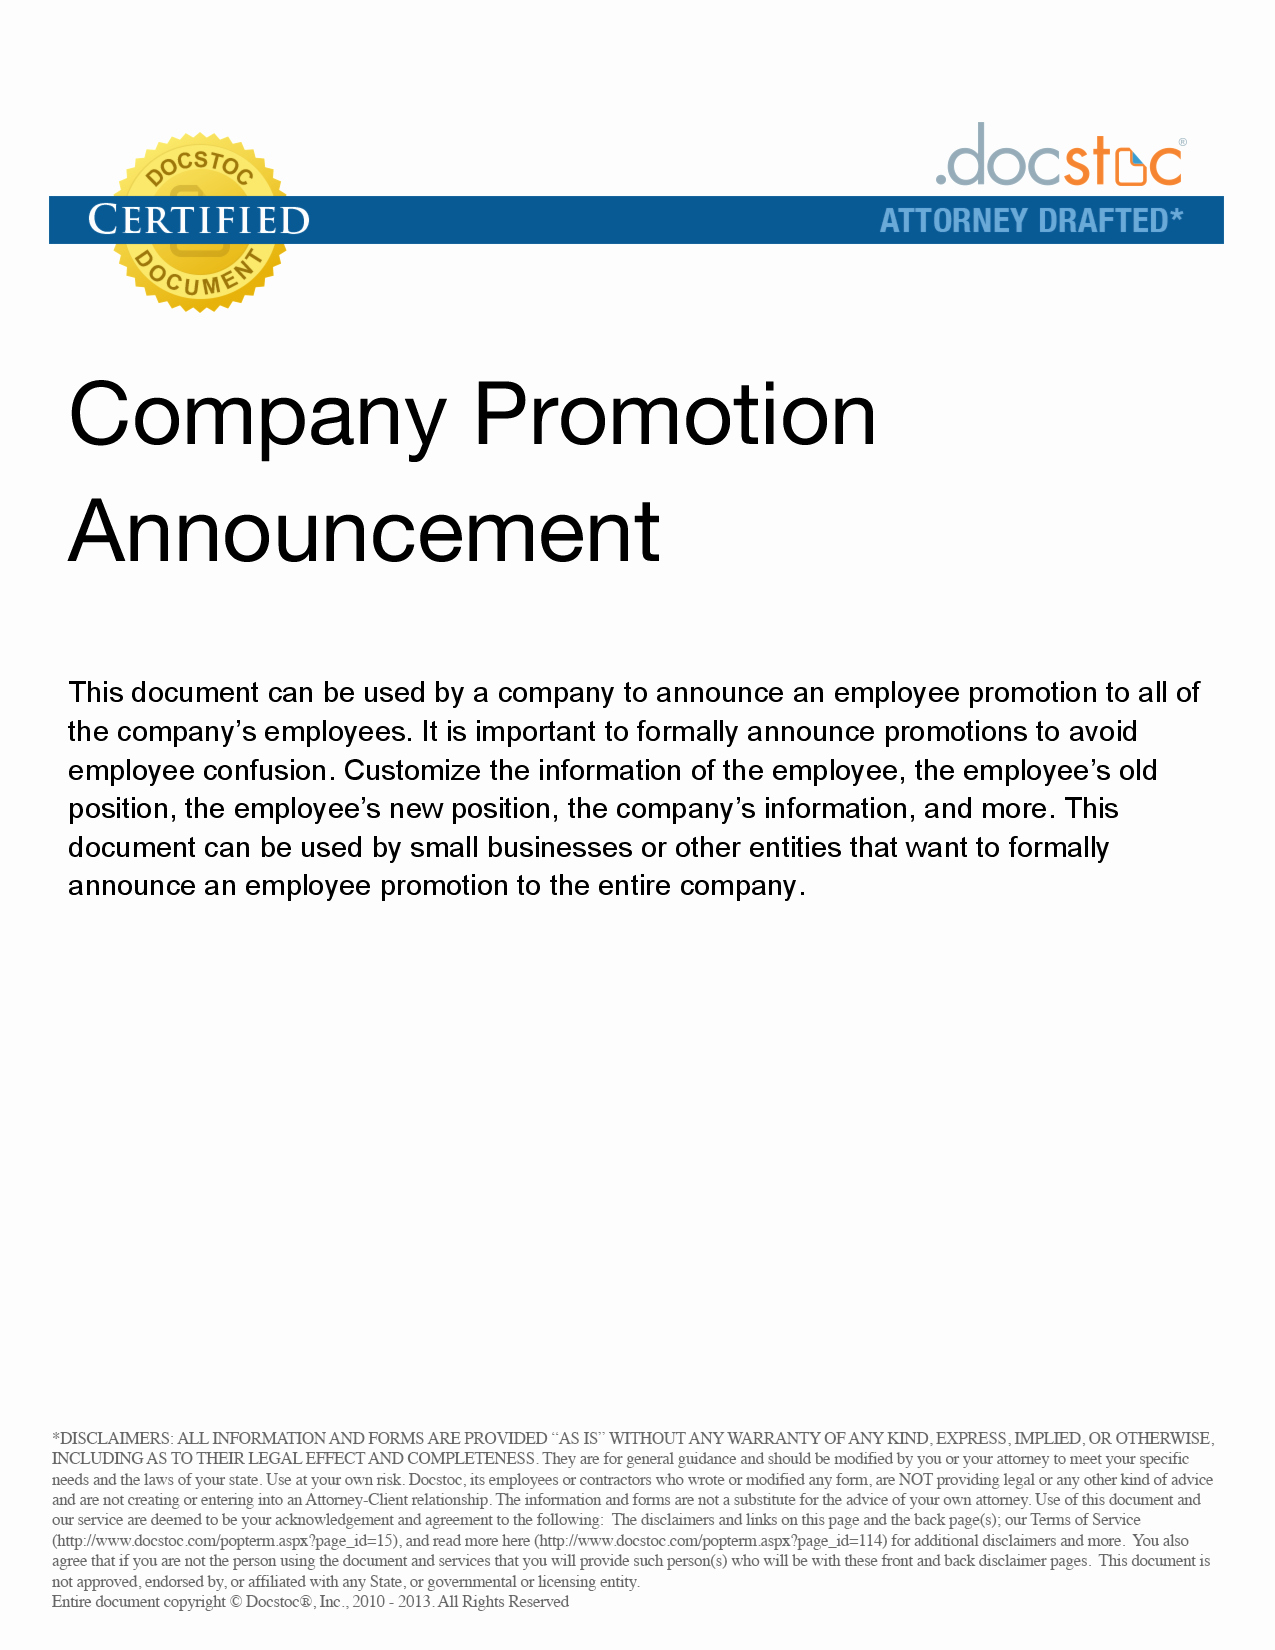 Employee Promotion Announcement Email Sample Best Of Best S Of Job Promotion Announcement Examples